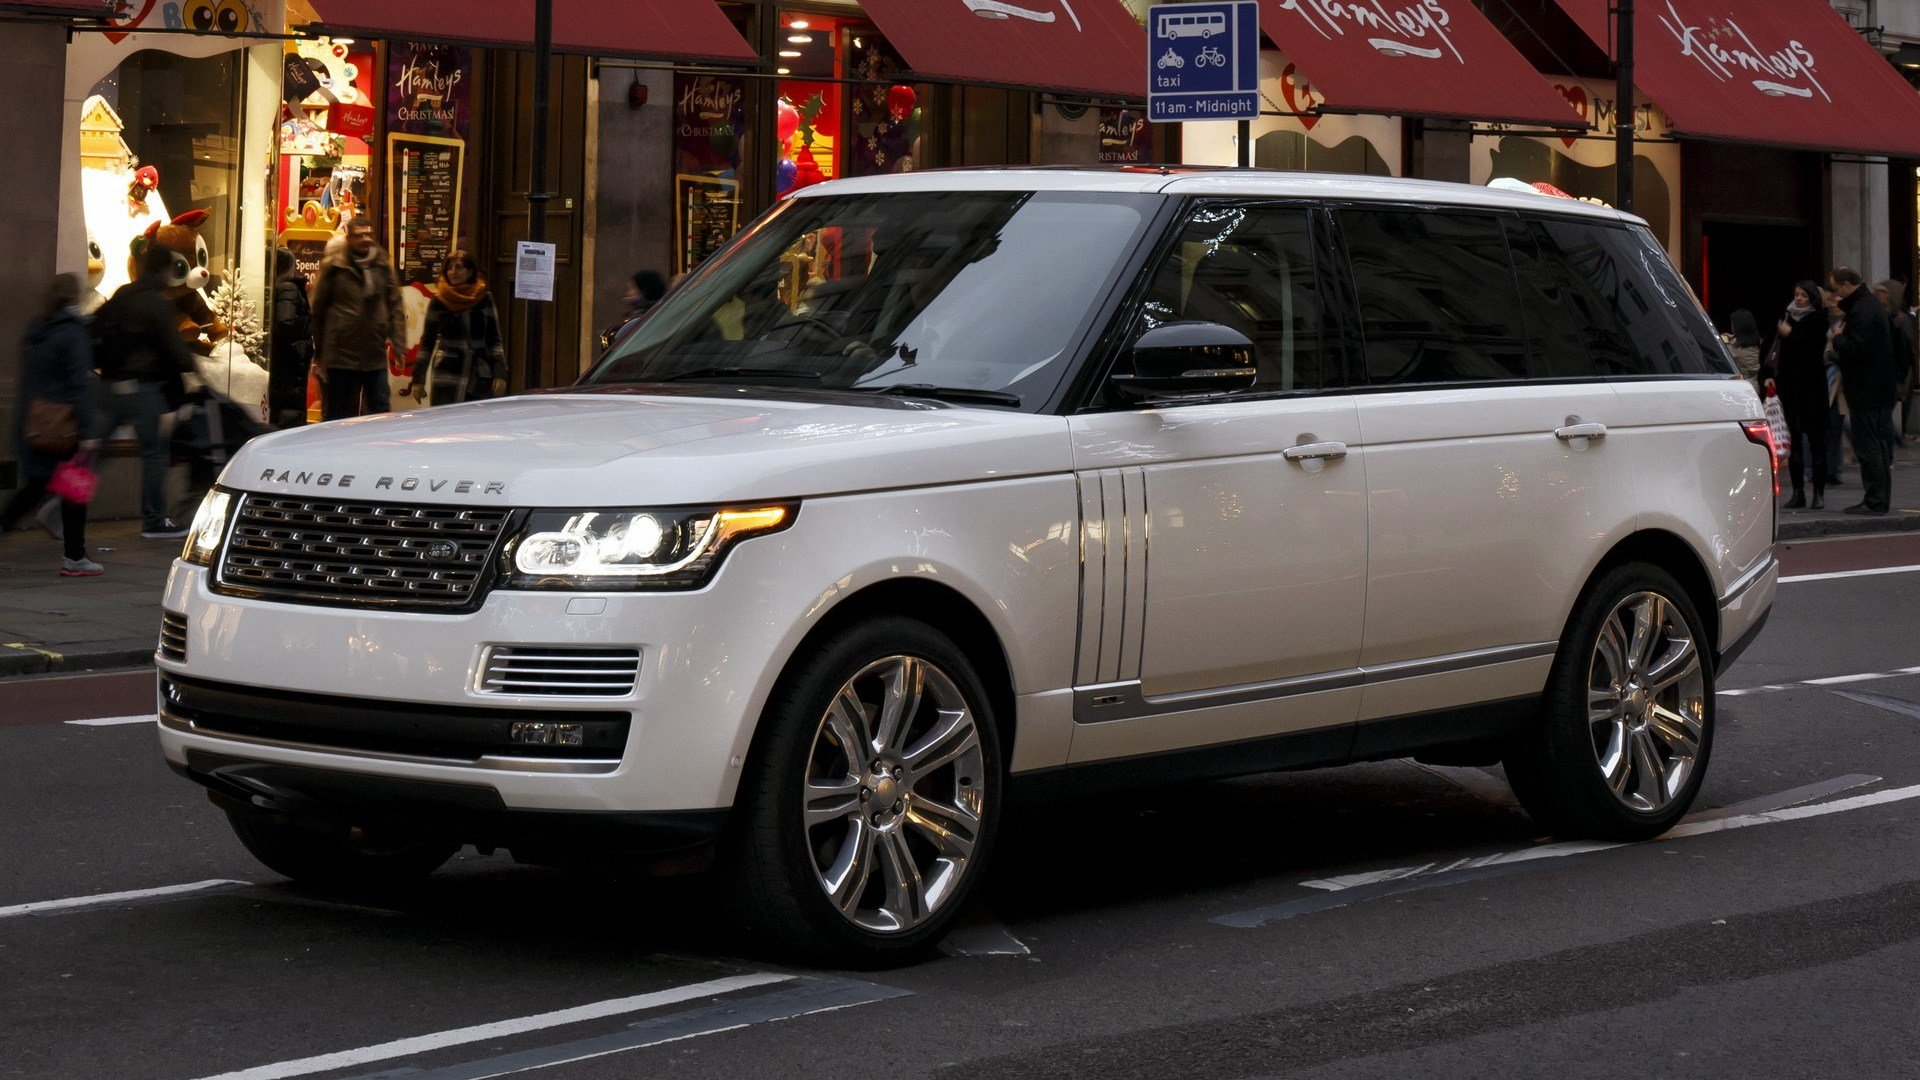 Latest 2014 Range Rover Autobiography Black Lwb Uk Free Download